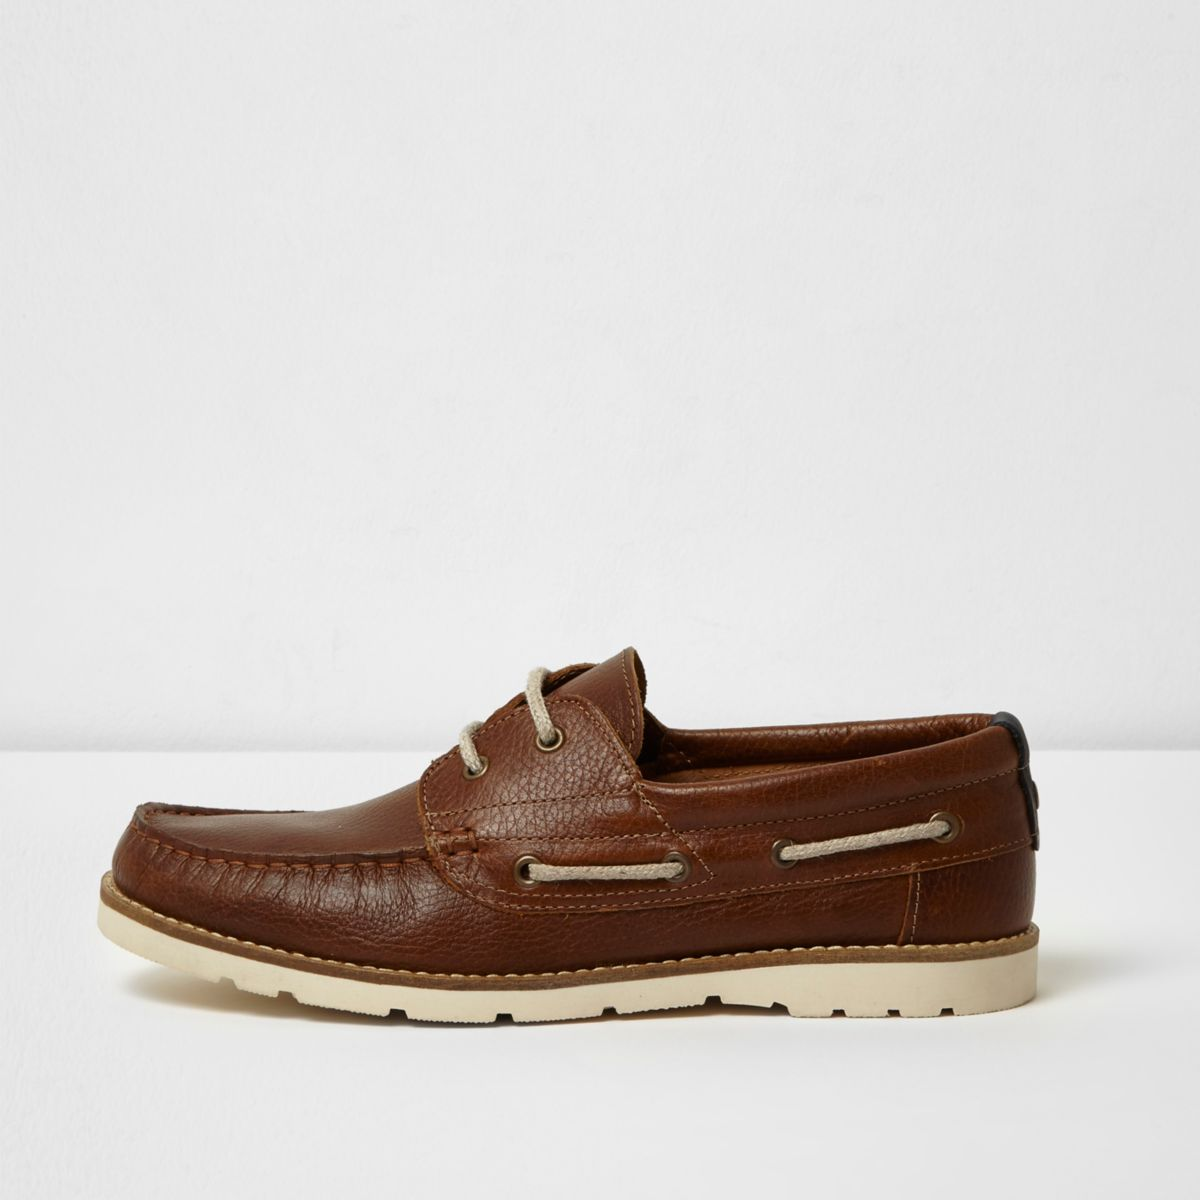 Tan brown rubber sole leather boat shoes